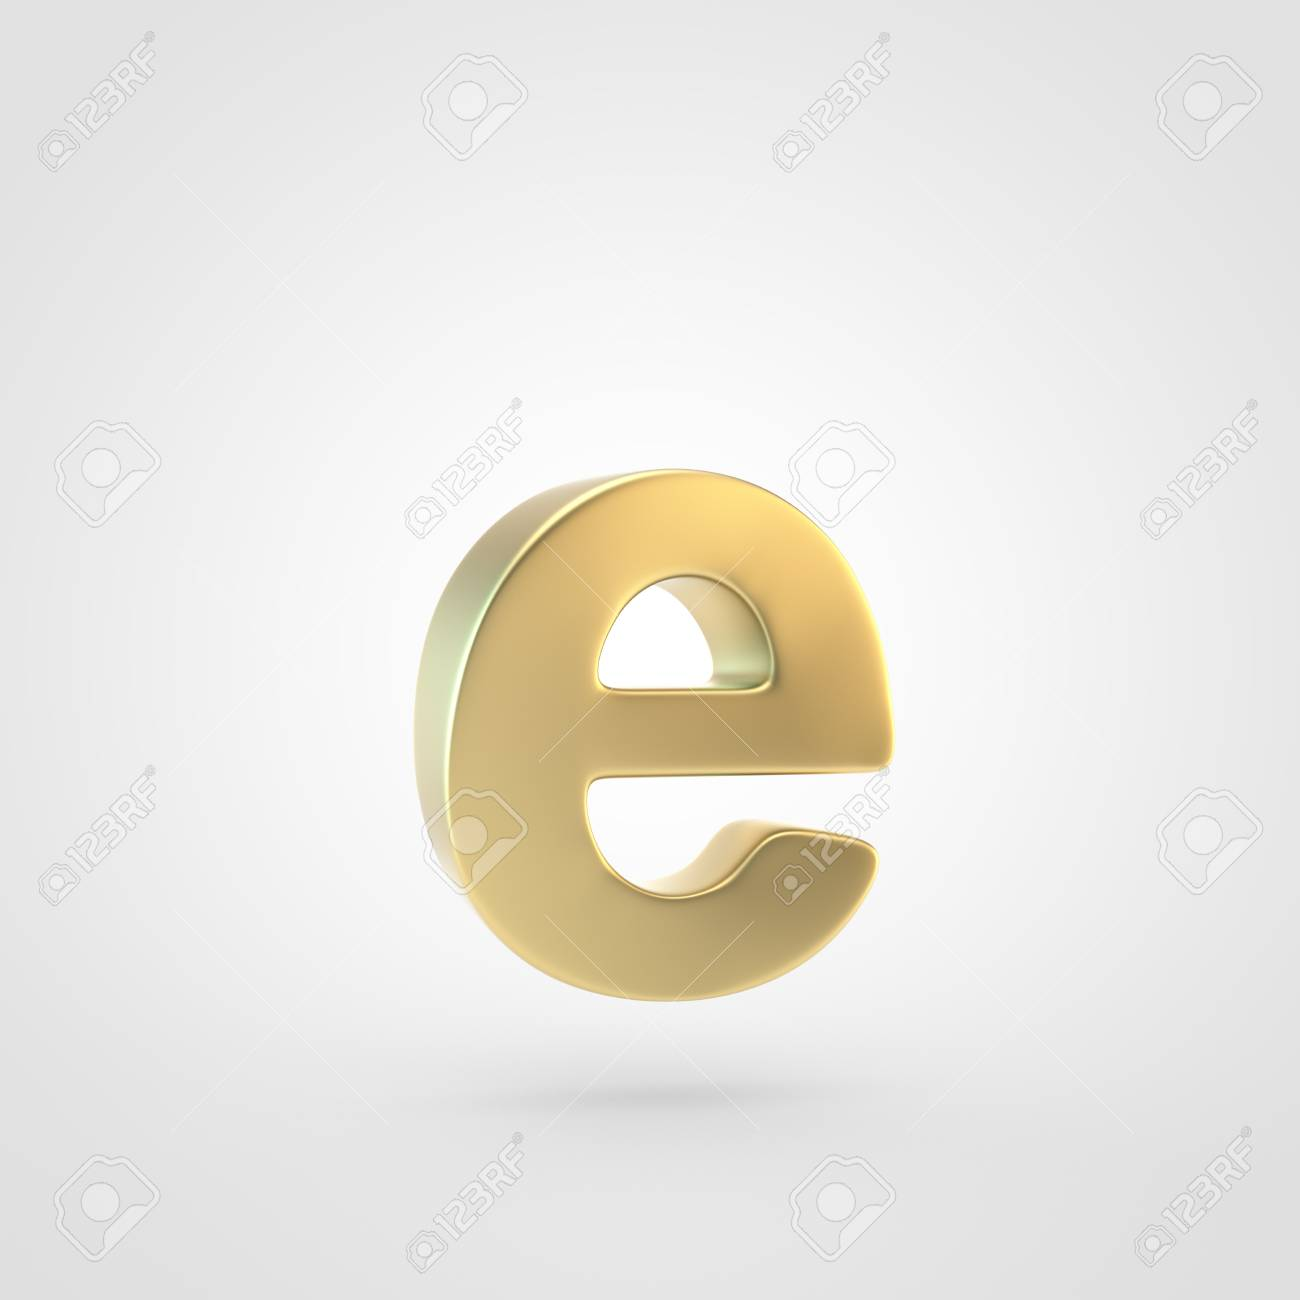 Golden Letter E Lowercase 3D Rendering Of Matted Golden Font 1300x1300